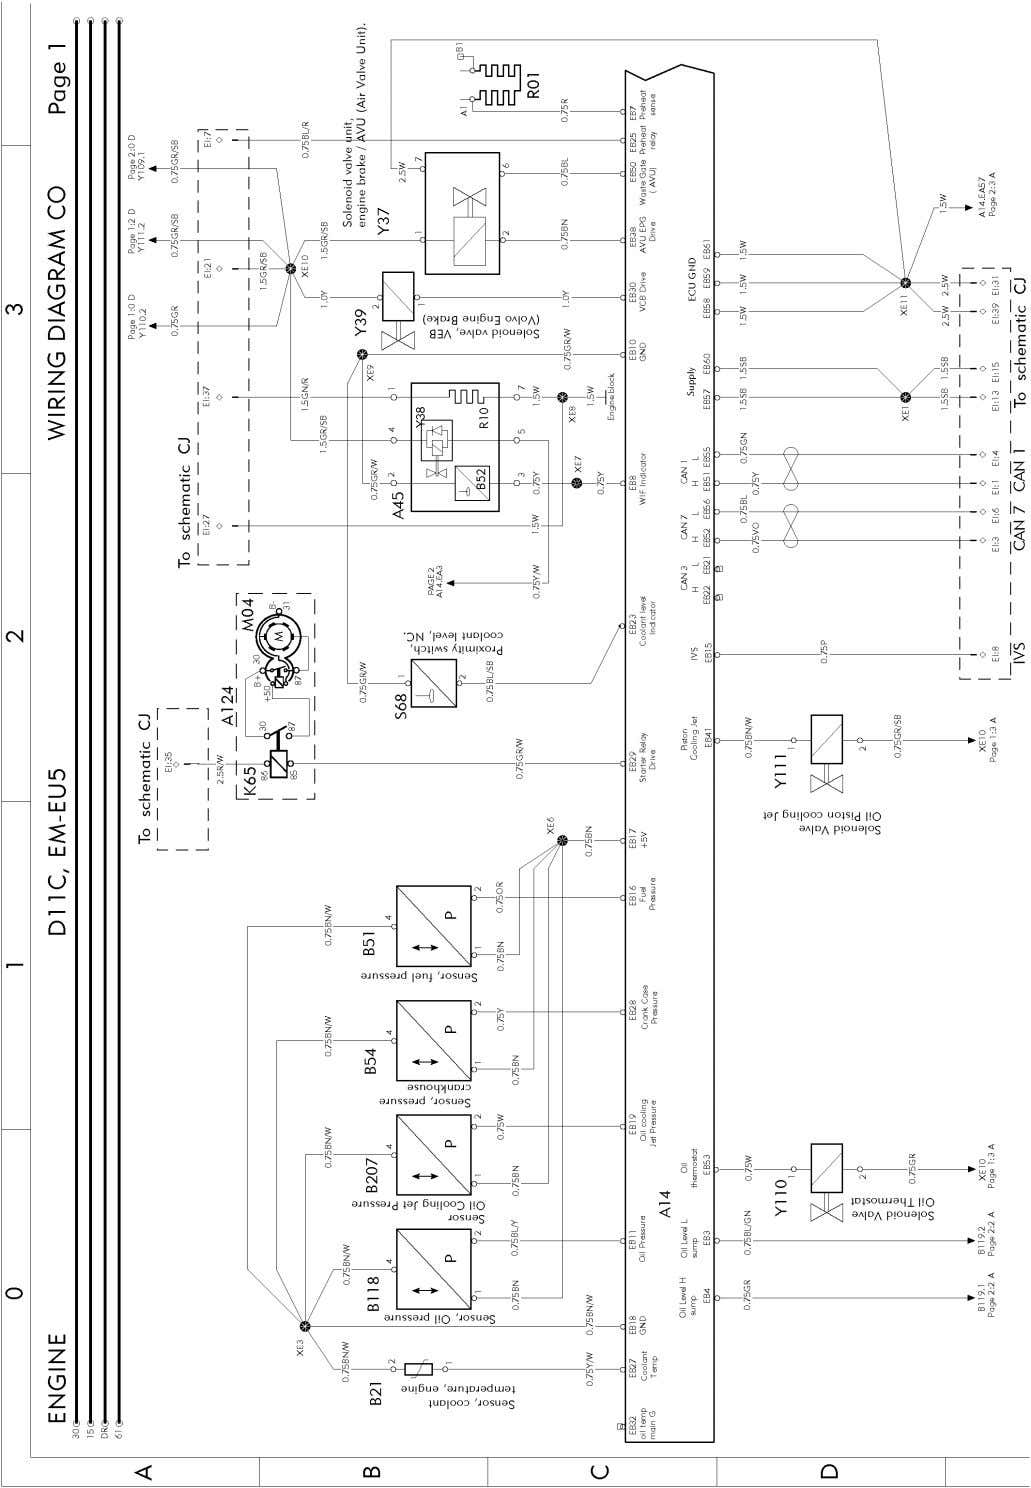 T3029205 Wiring diagram Page 23 (298)